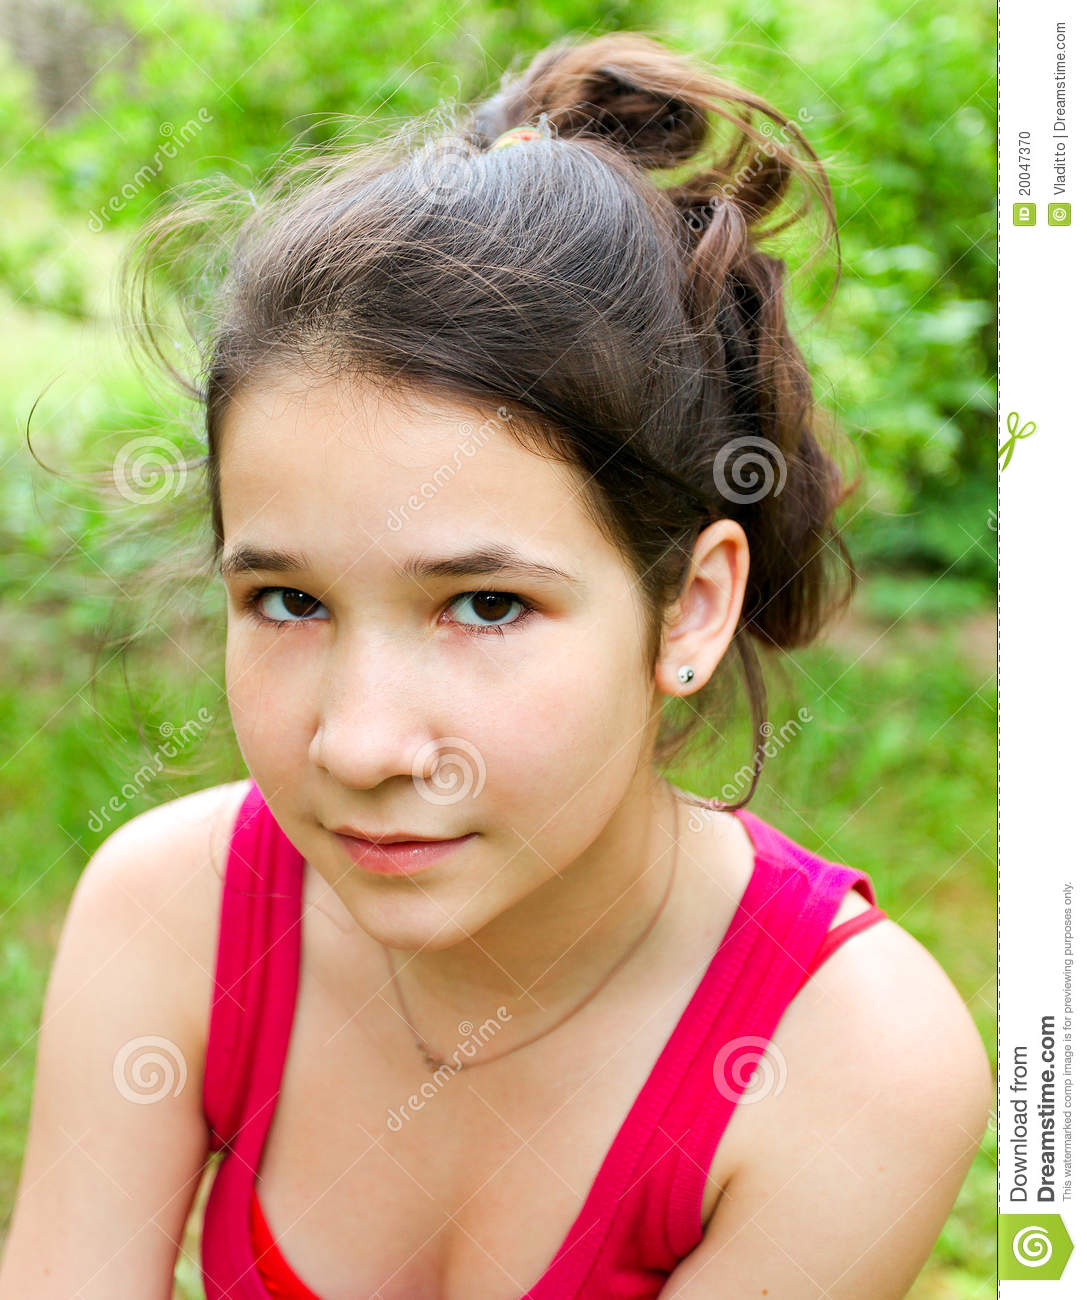 Portrait Of Tired Young Girl Stock Photo - Image: 20047370: https://www.dreamstime.com/stock-photo-portrait-tired-young-girl-image20047370